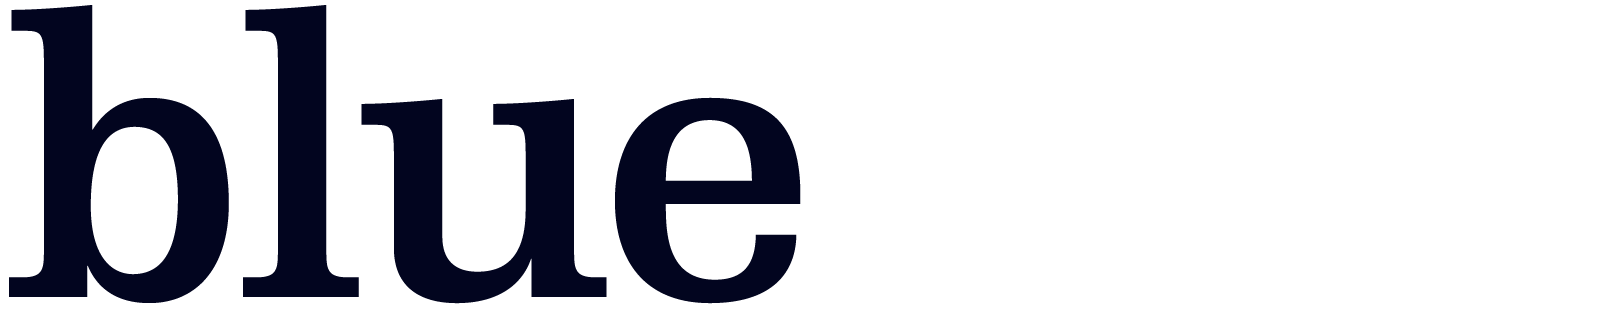 bluetree logo